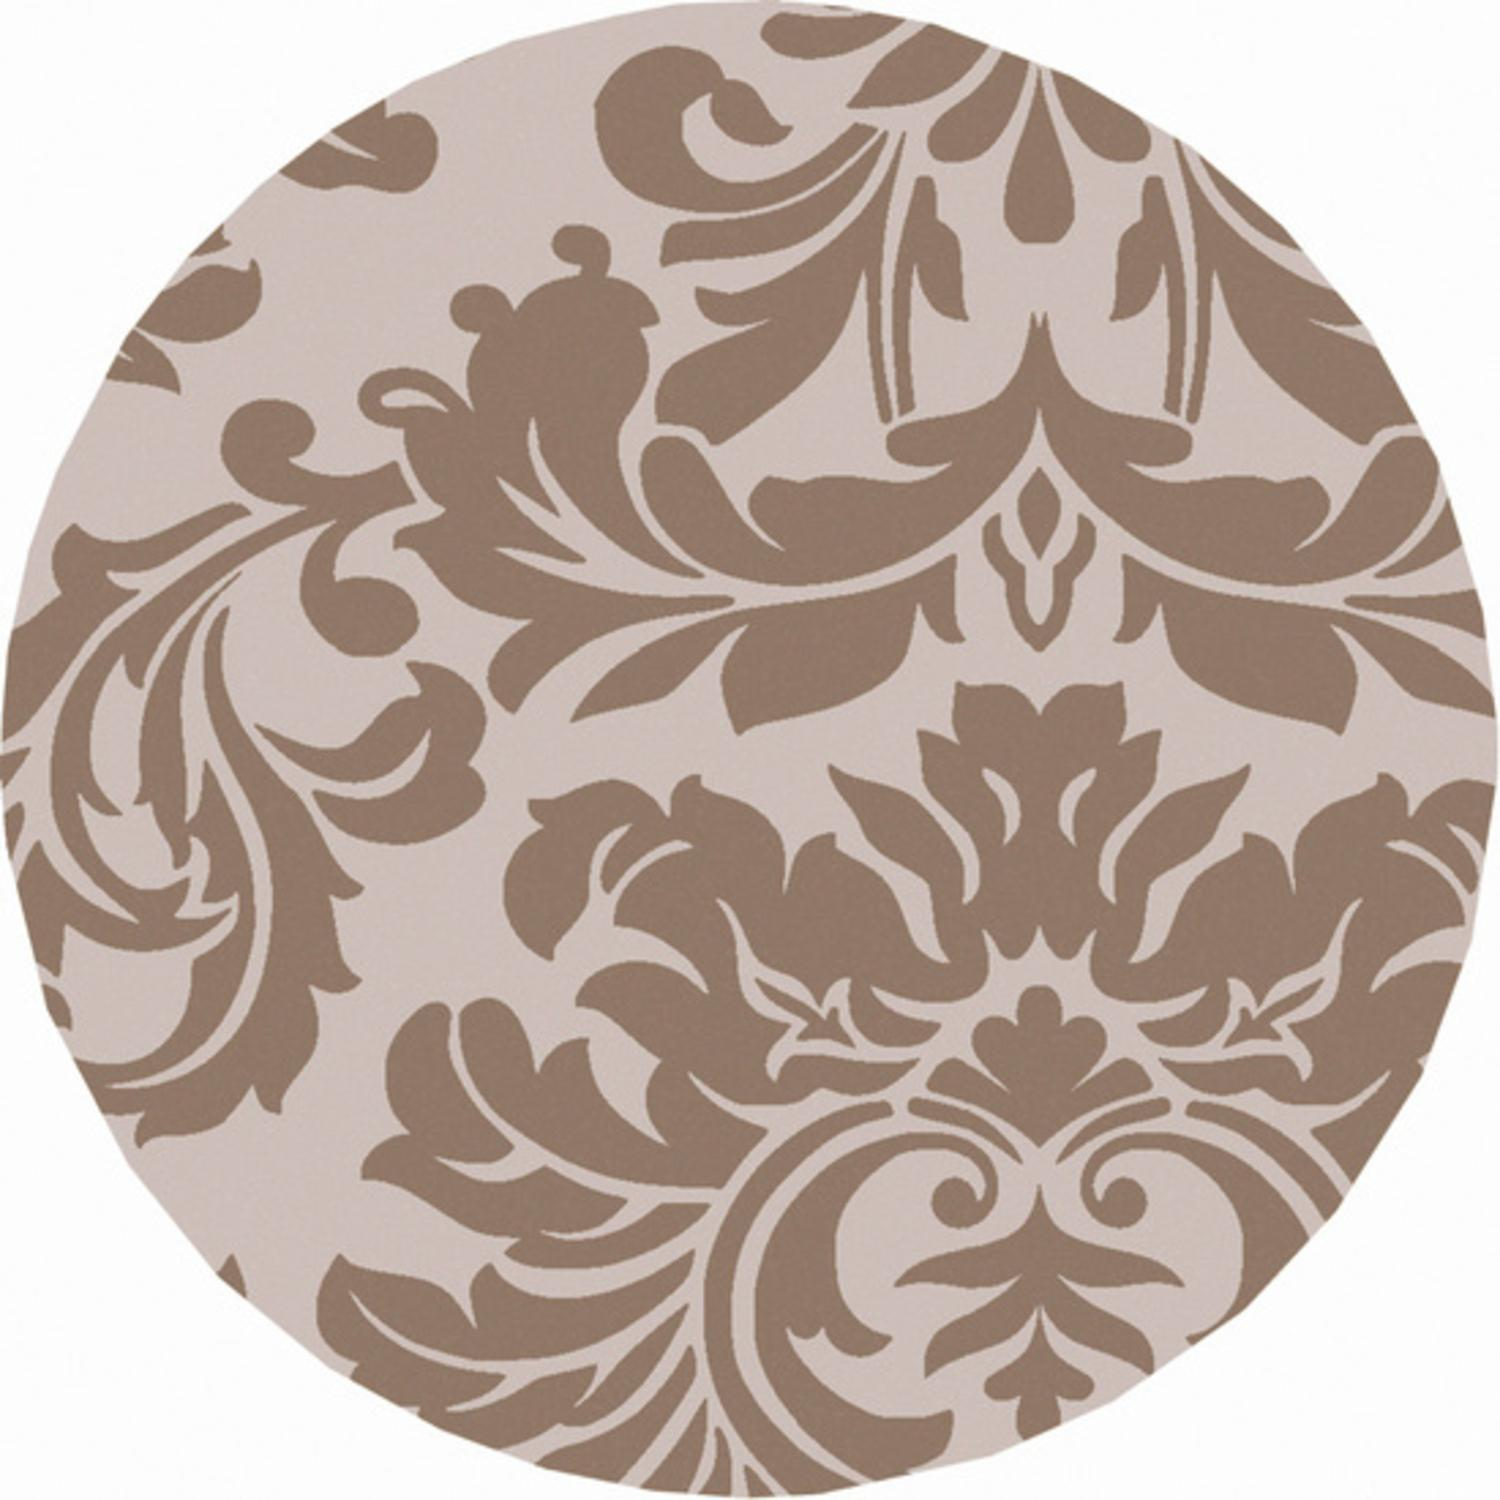 4' Falling Leaves Damask Light Brown and Stone Gray Round Hand Tufted Wool Area Throw Rug